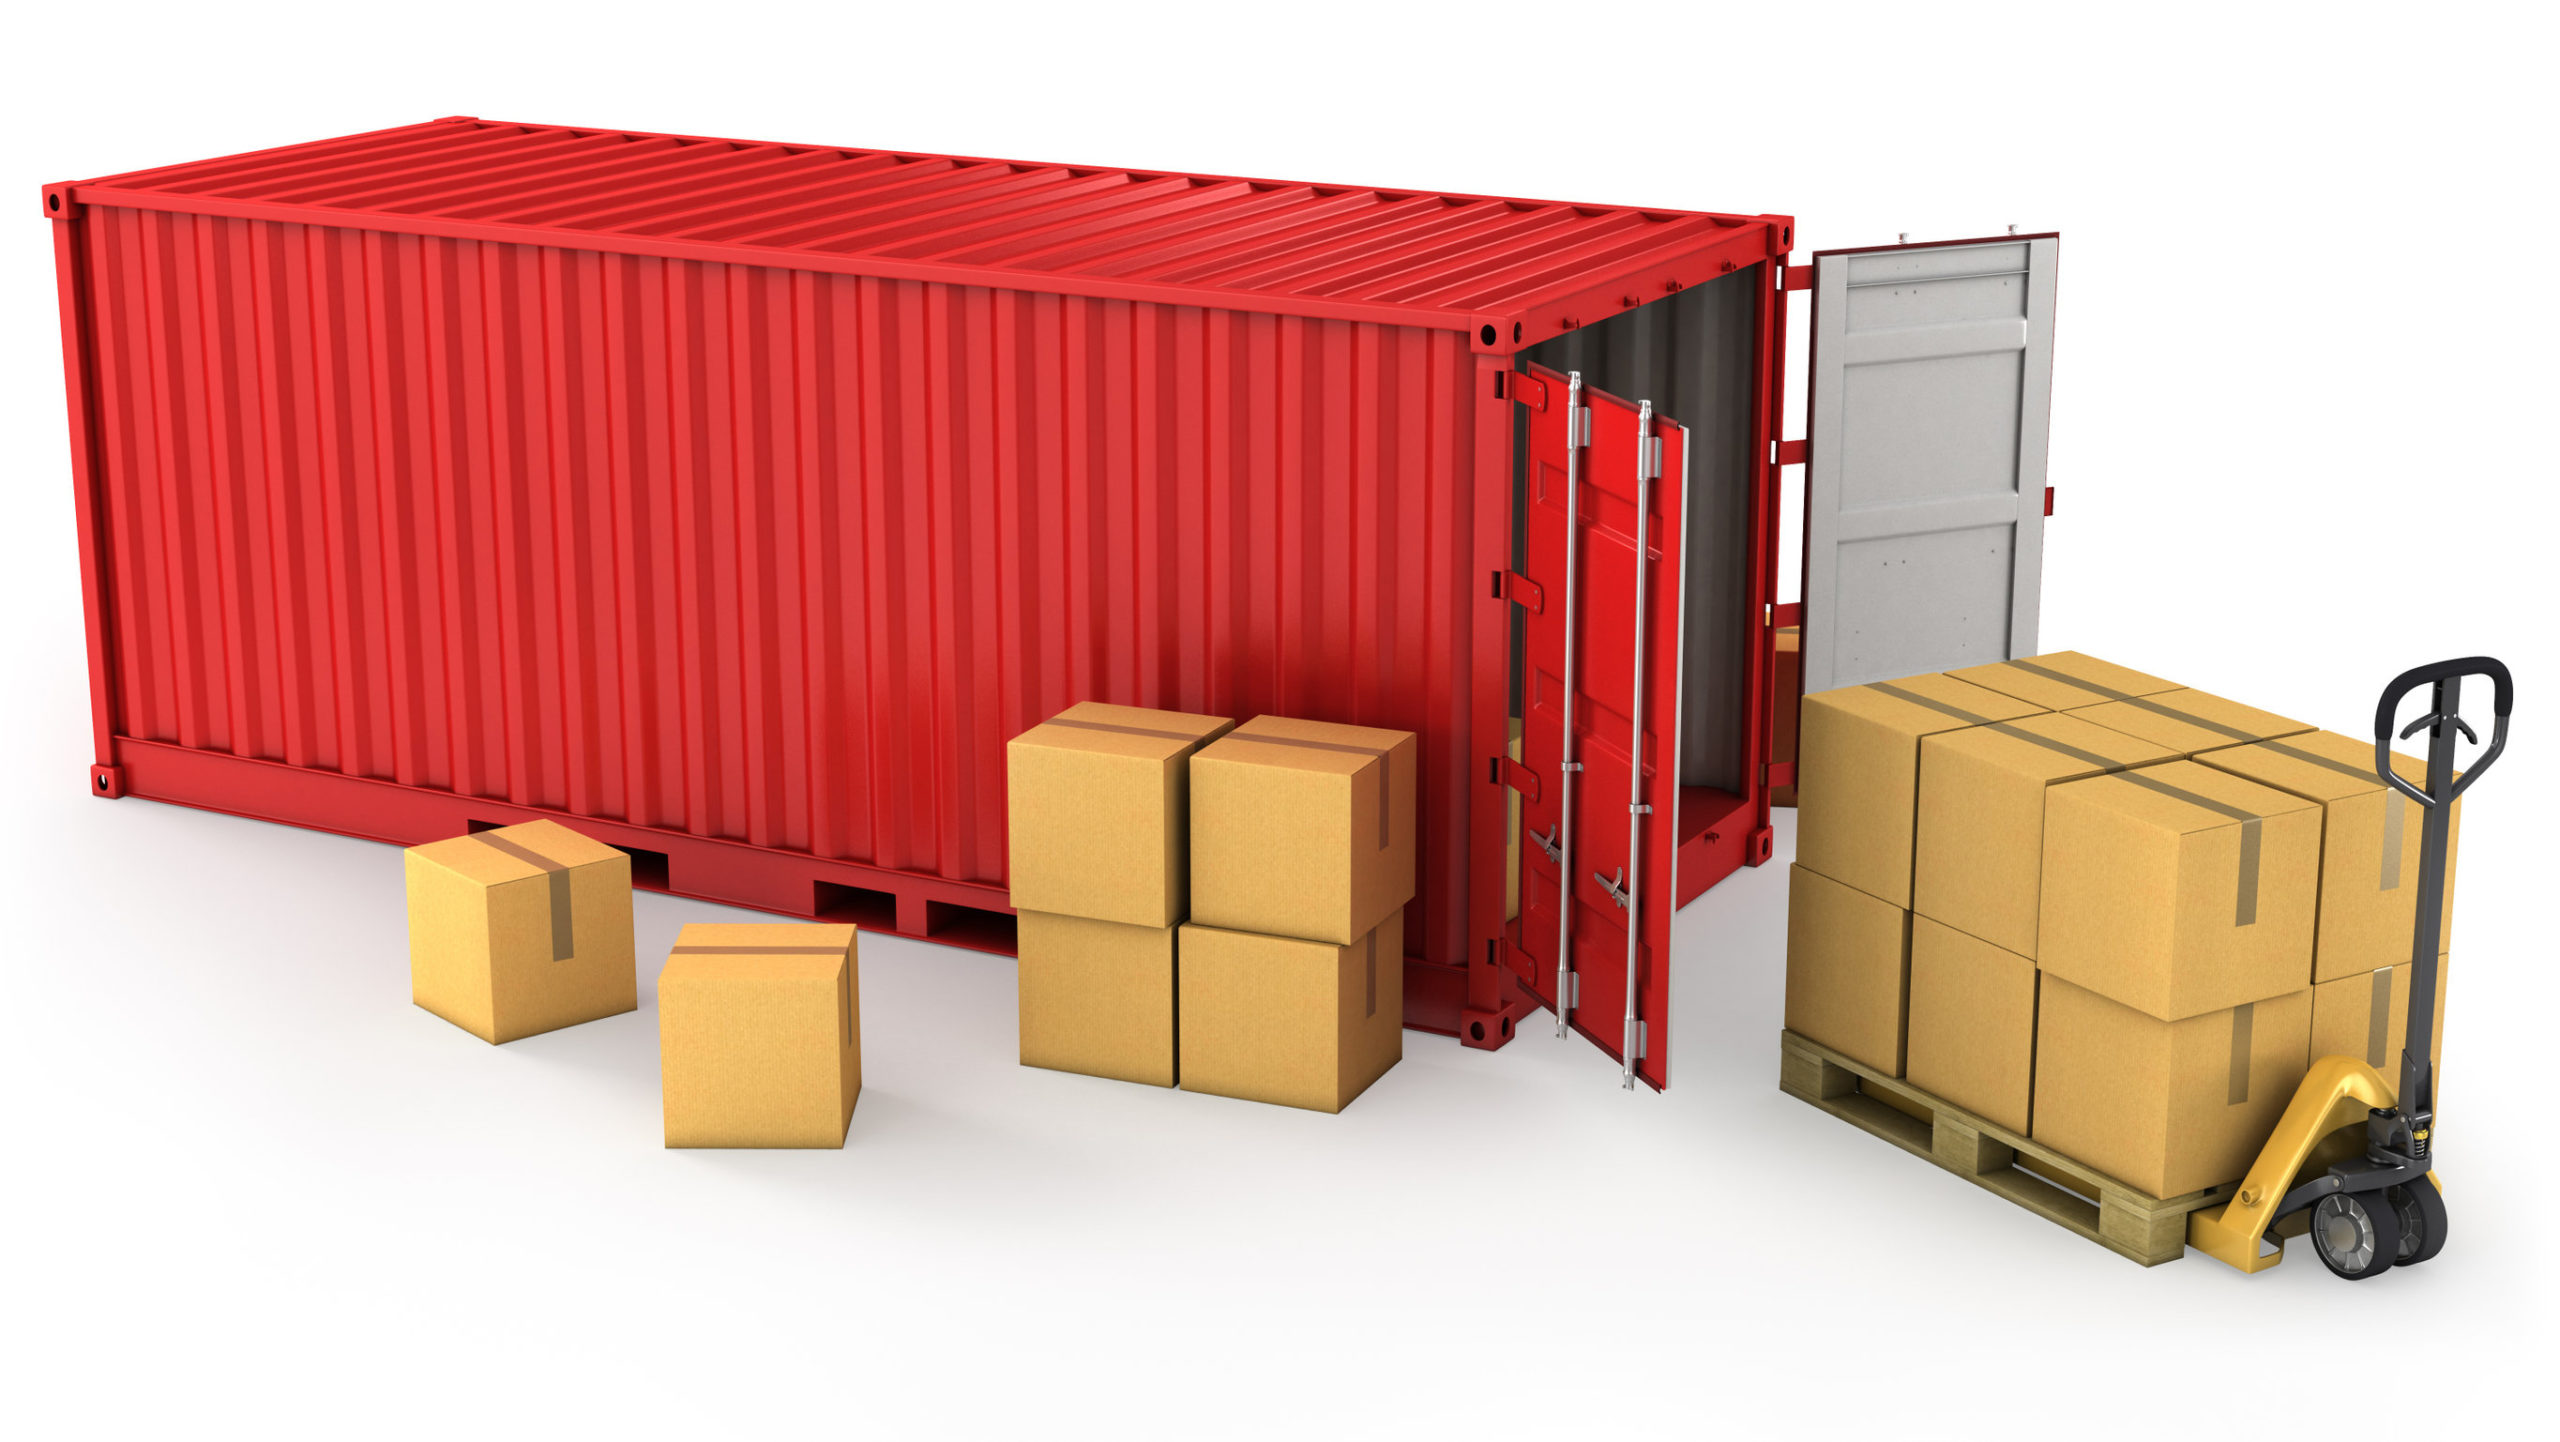 5 Popular Uses of Storage Containers at Construction Site